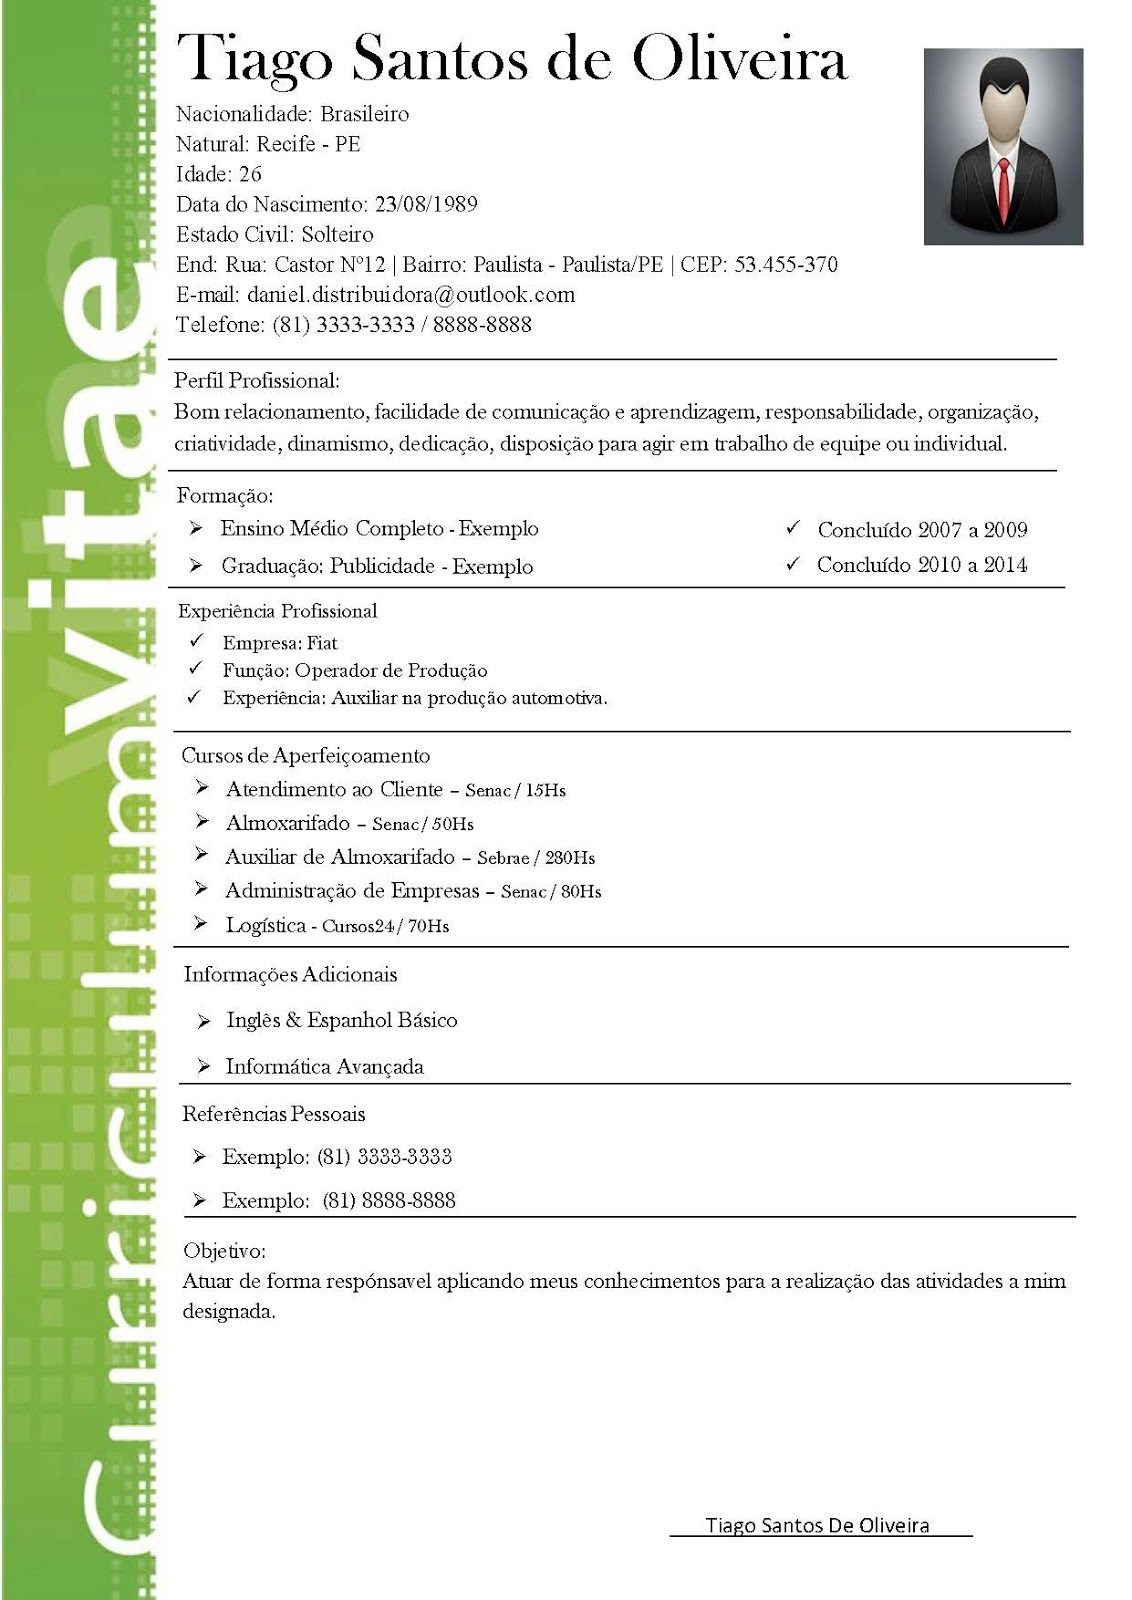 Modelo De Curriculum Vitae Libreoffice  Modelo De. Application Cover Letter Introduction. Resume Maker For Mac. Curriculum Vitae Formato Europeo Vuoto. Greeting For Cover Letter To Unknown. Resume Template Customer Service. Letter Resignation After Short Employment. Cover Letter For Hospital Pharmacist Position. Cover Letter For Veterinary Job